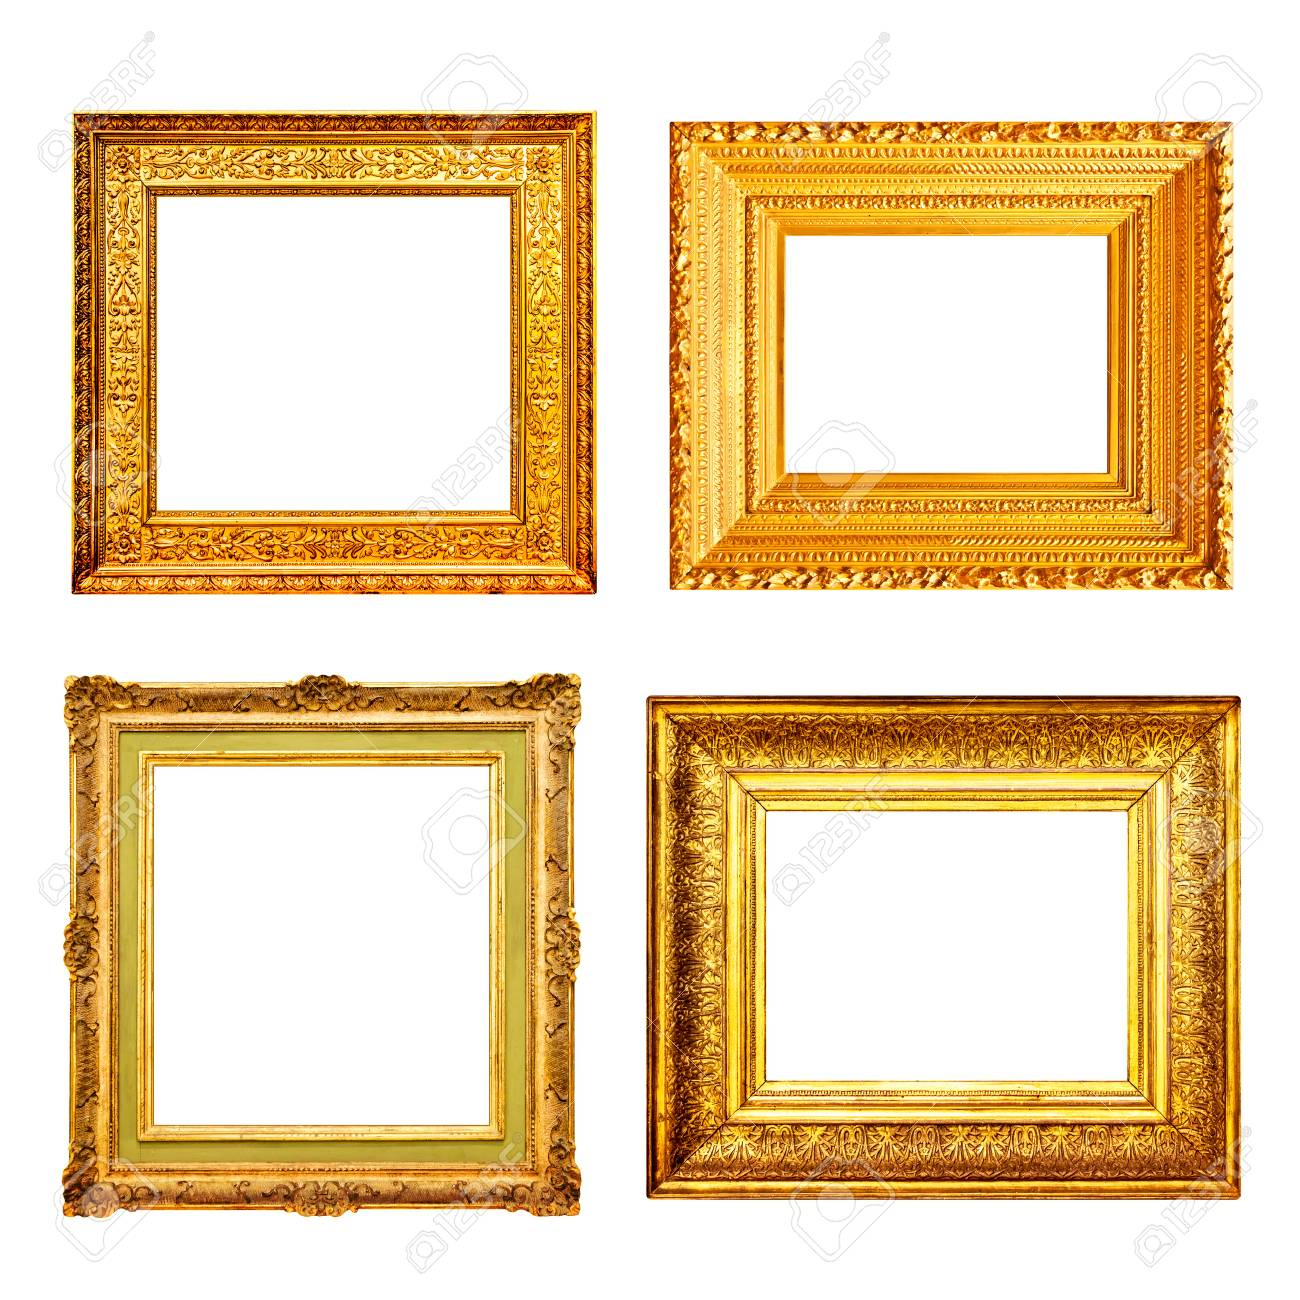 411b48223ec Set Of Many Antique Gold Frames Isolated On White Background Stock